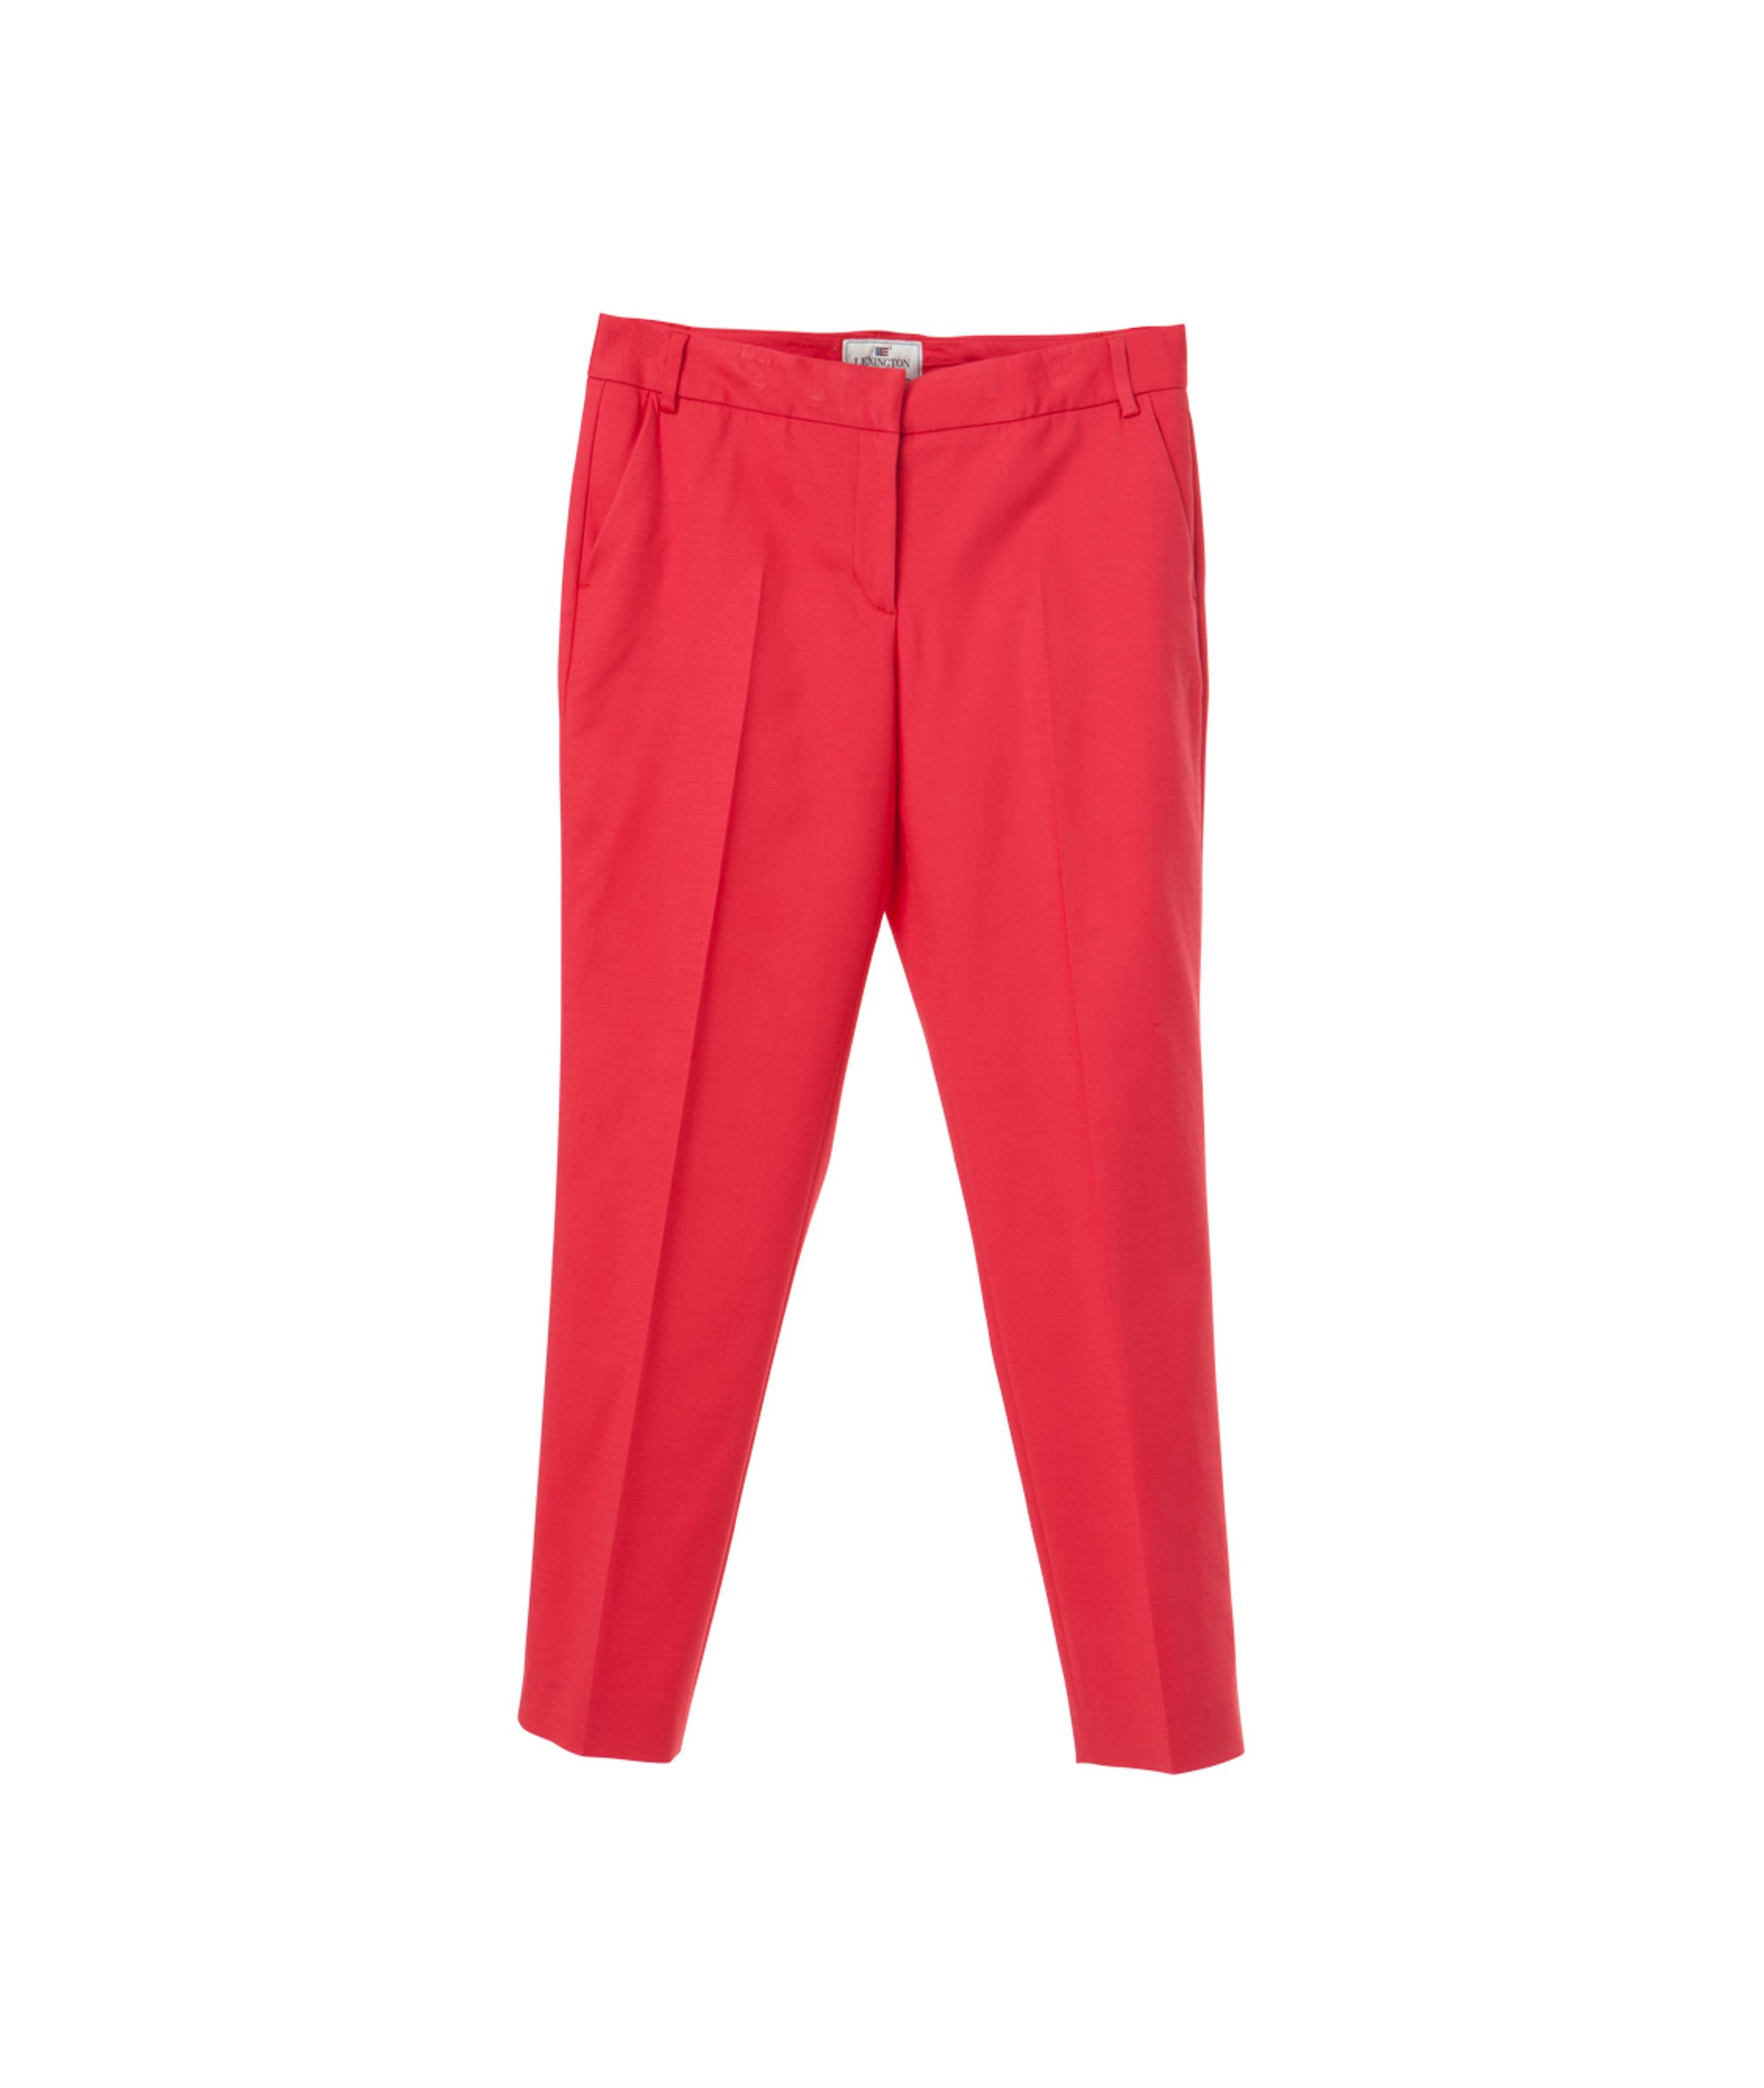 Blake Ankle Length Pants, Pompeian Red